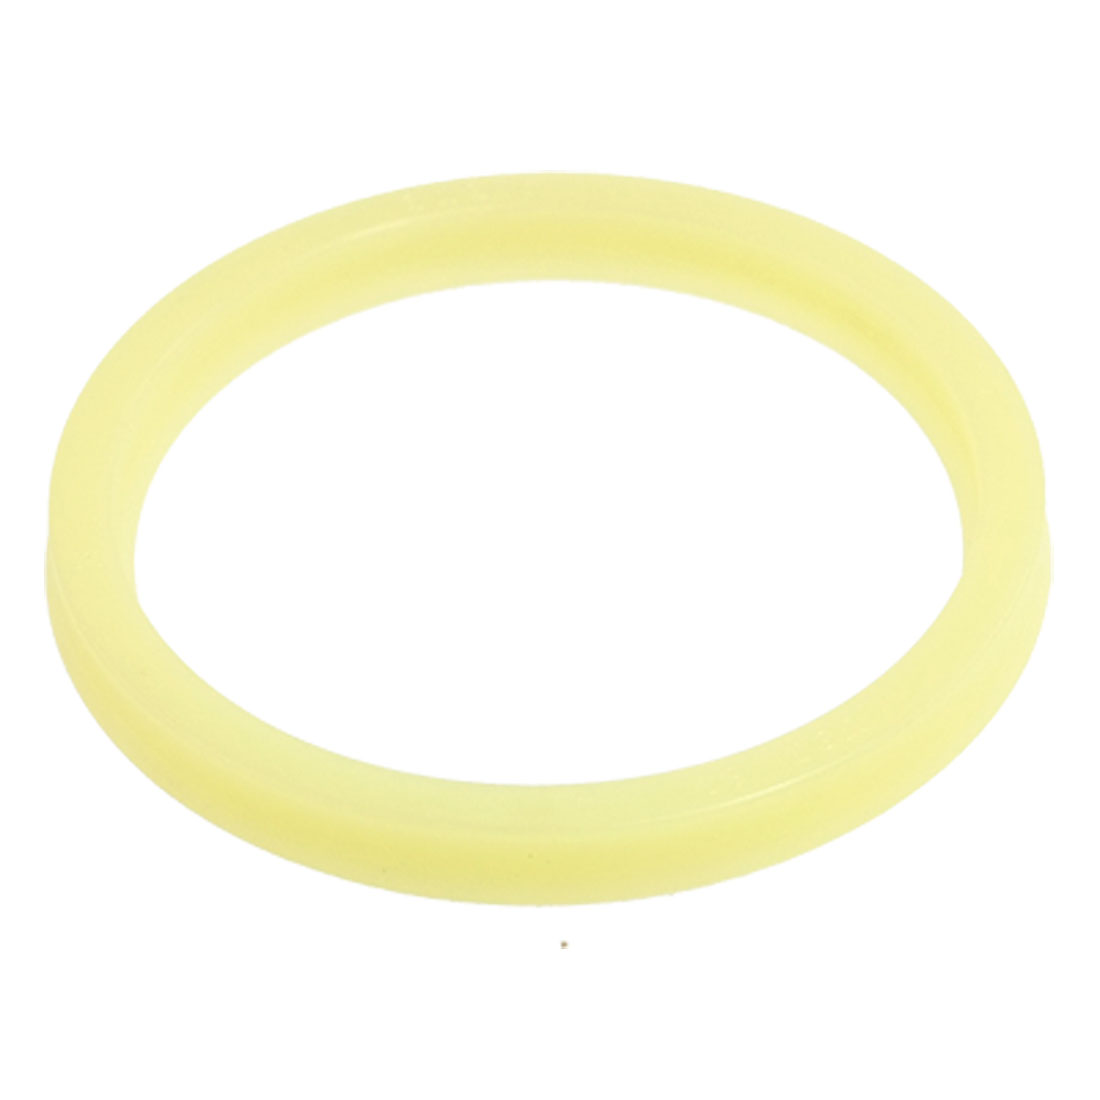 PU 60mm x 70mm x 7mm Hydraulic Pressure Oil Seal Ring Gasket